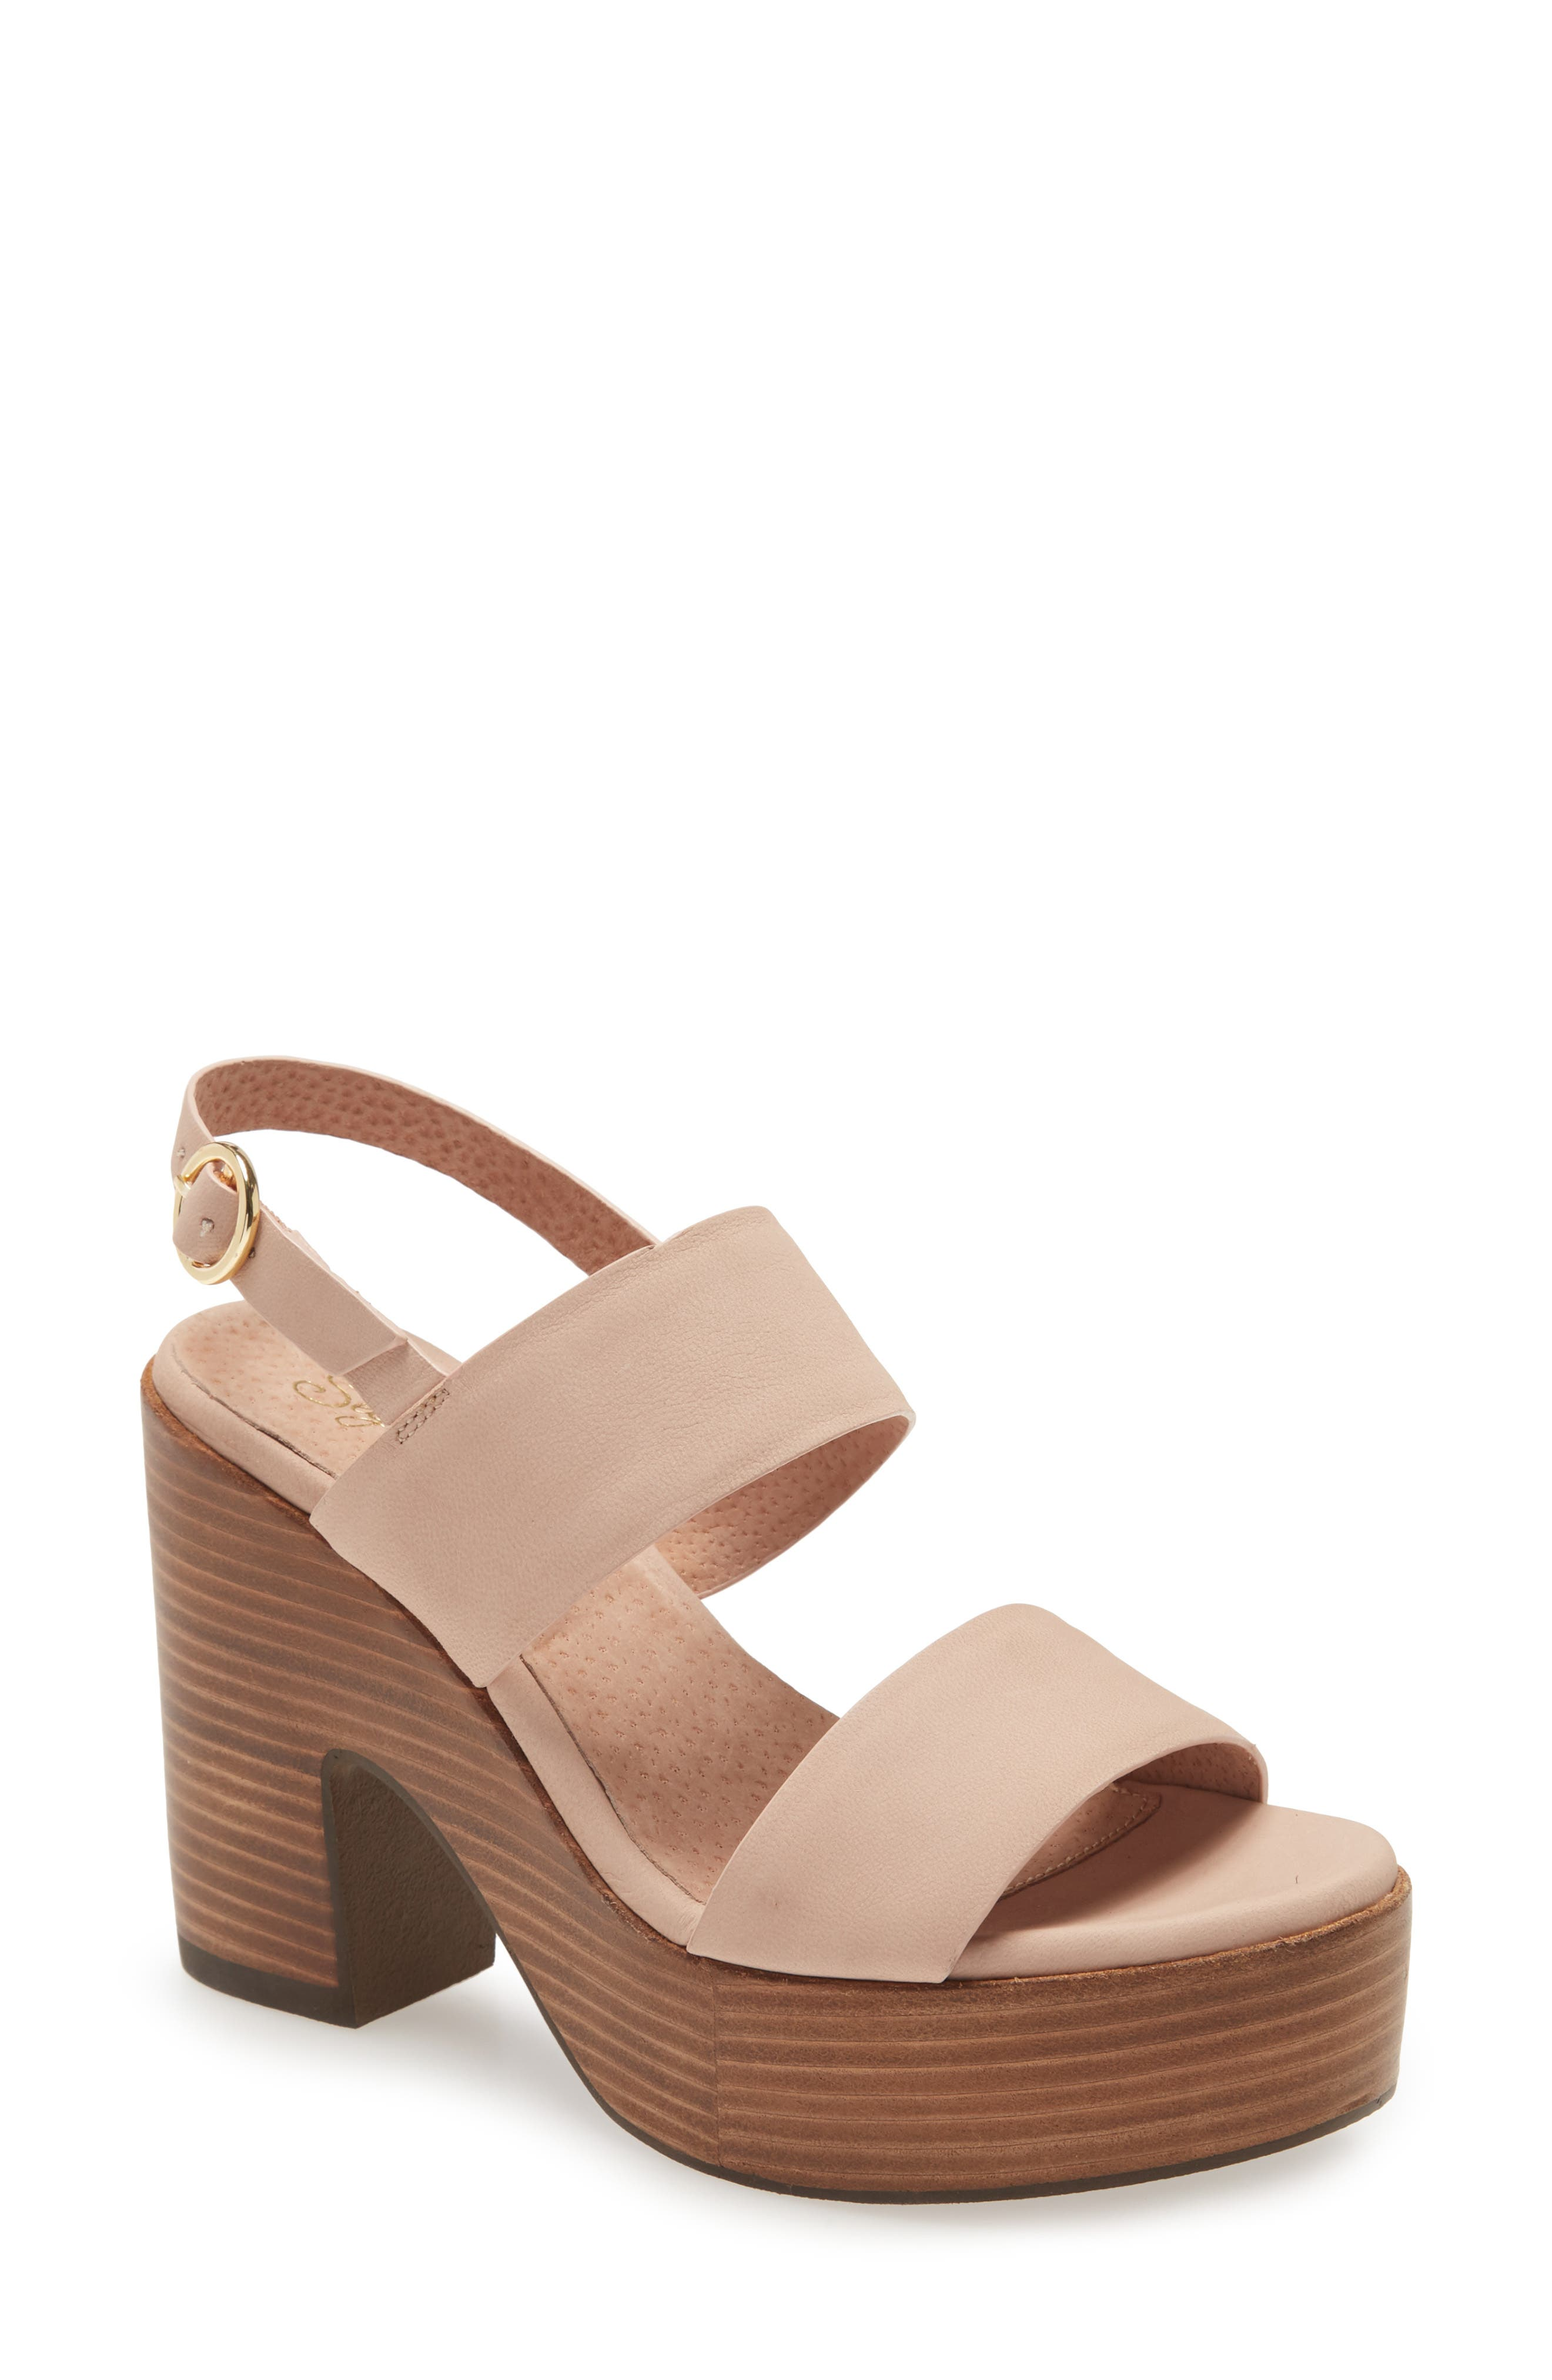 A woodgrain platform and chunky heel bring \\\'70s-inspired height to a lightly cushioned slingback sandal. Style Name: Seychelles Pleased Platform Sandal (Women). Style Number: 5995351. Available in stores.